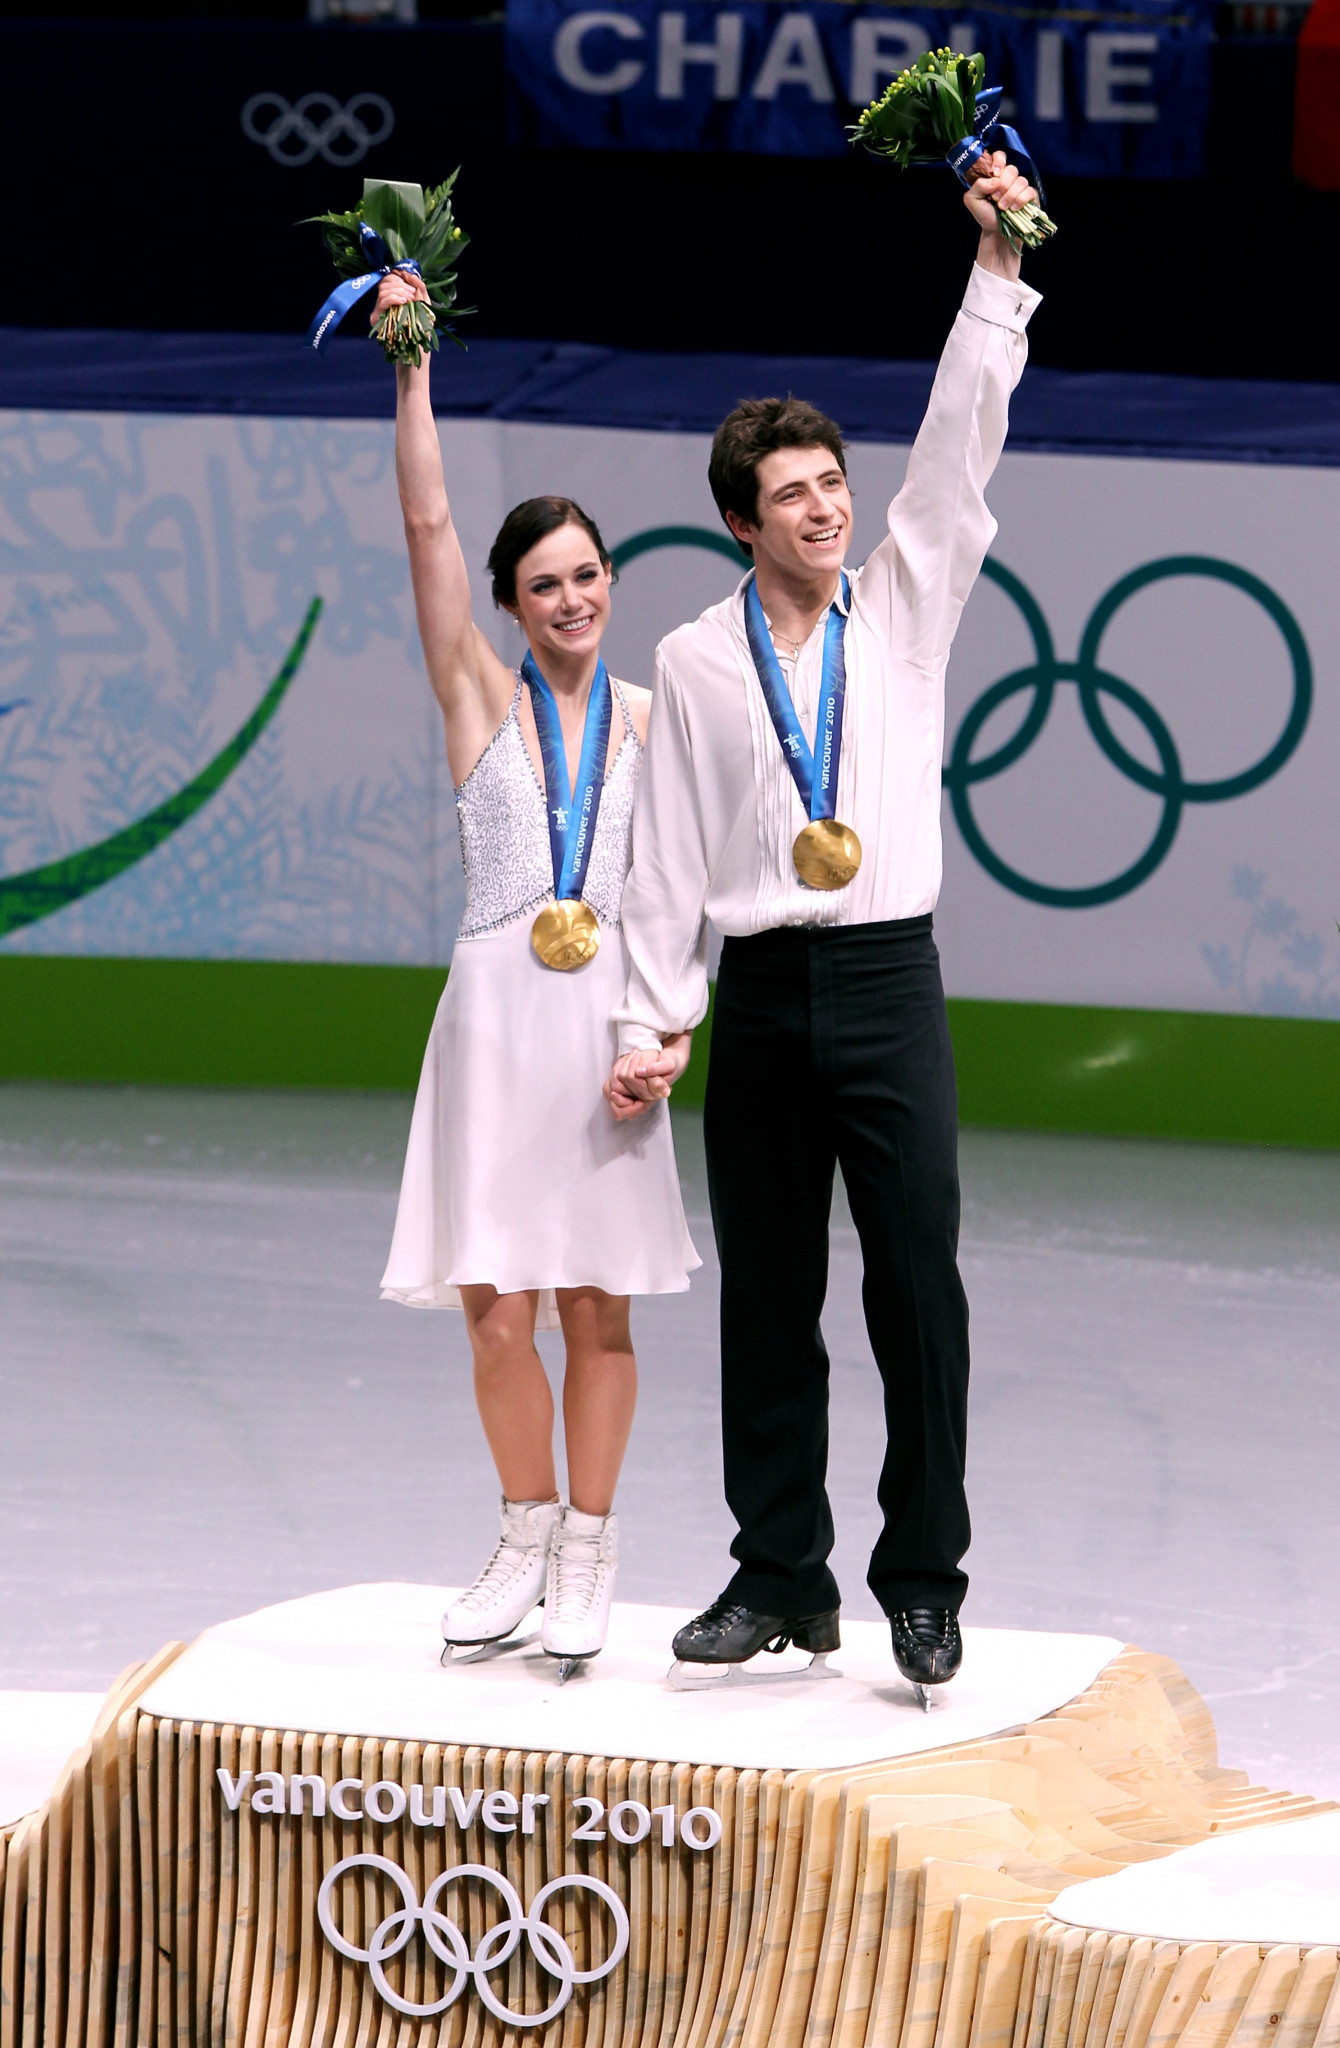 Tessa Virtue and Scott Moir won Olympic gold medals on home ice at Vancouver 2010 ©Getty Images